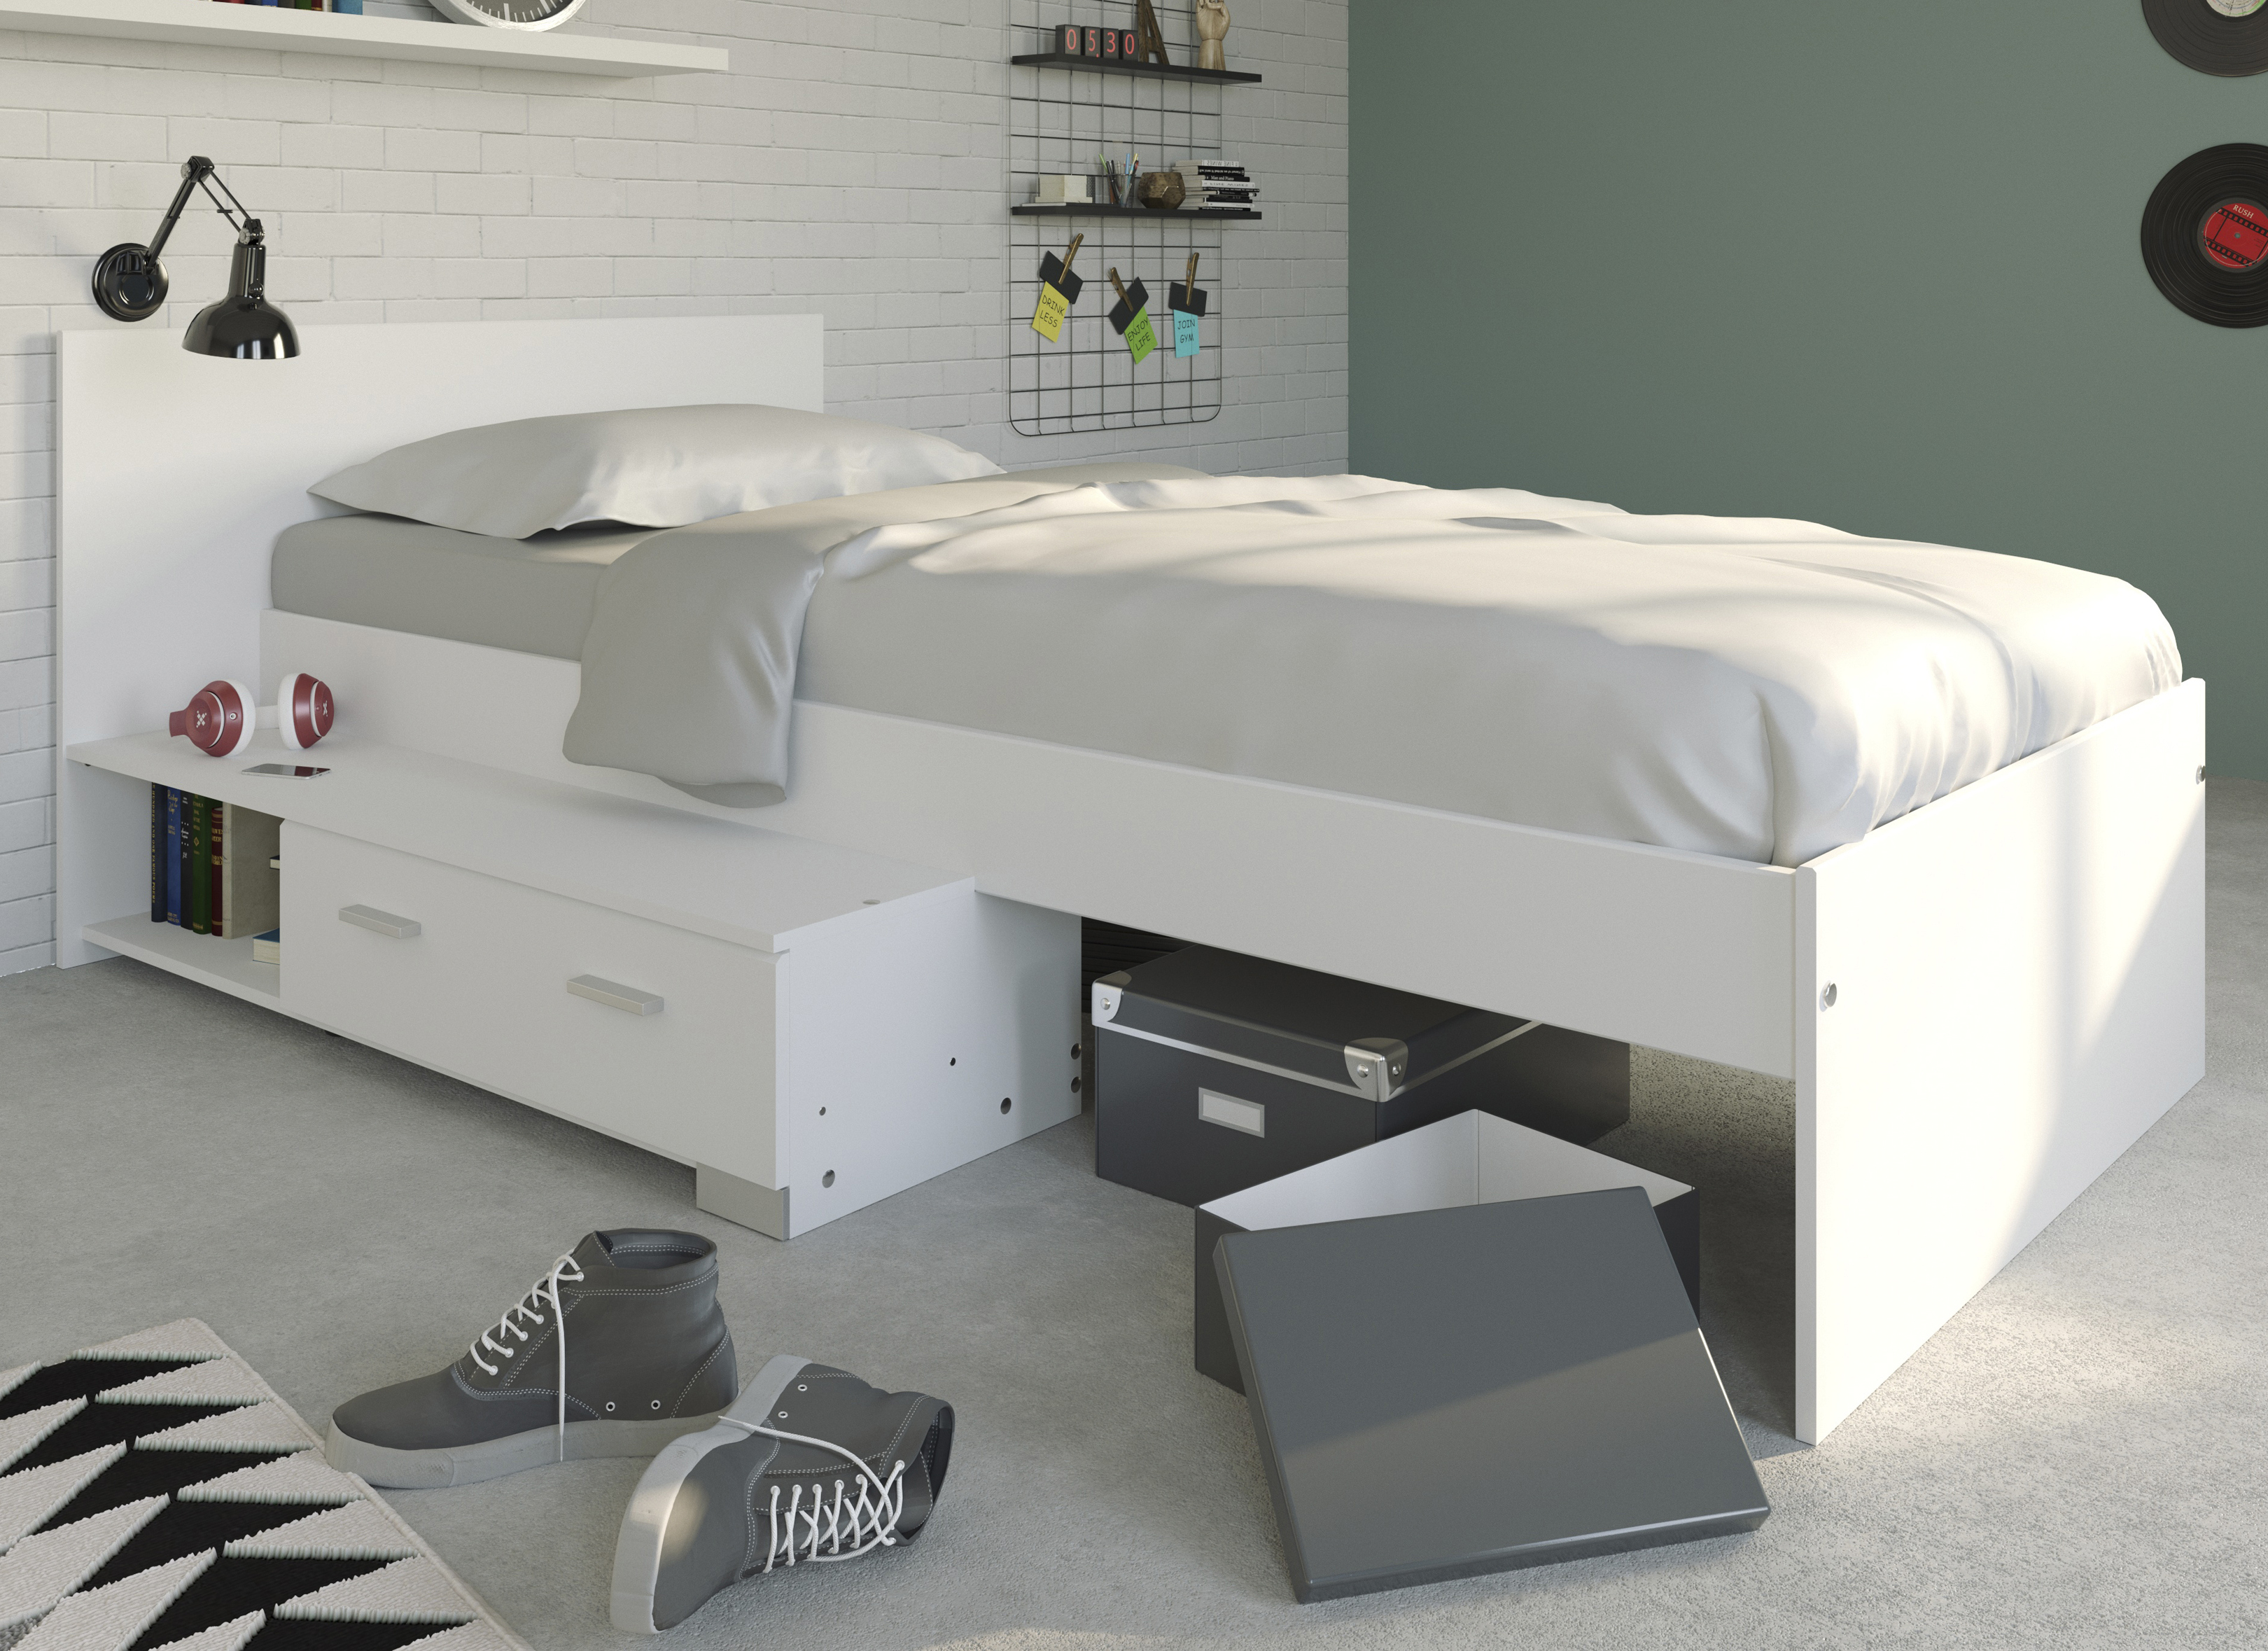 90x200 stauraumbett jungs galaxy 16b von parisot weiss. Black Bedroom Furniture Sets. Home Design Ideas